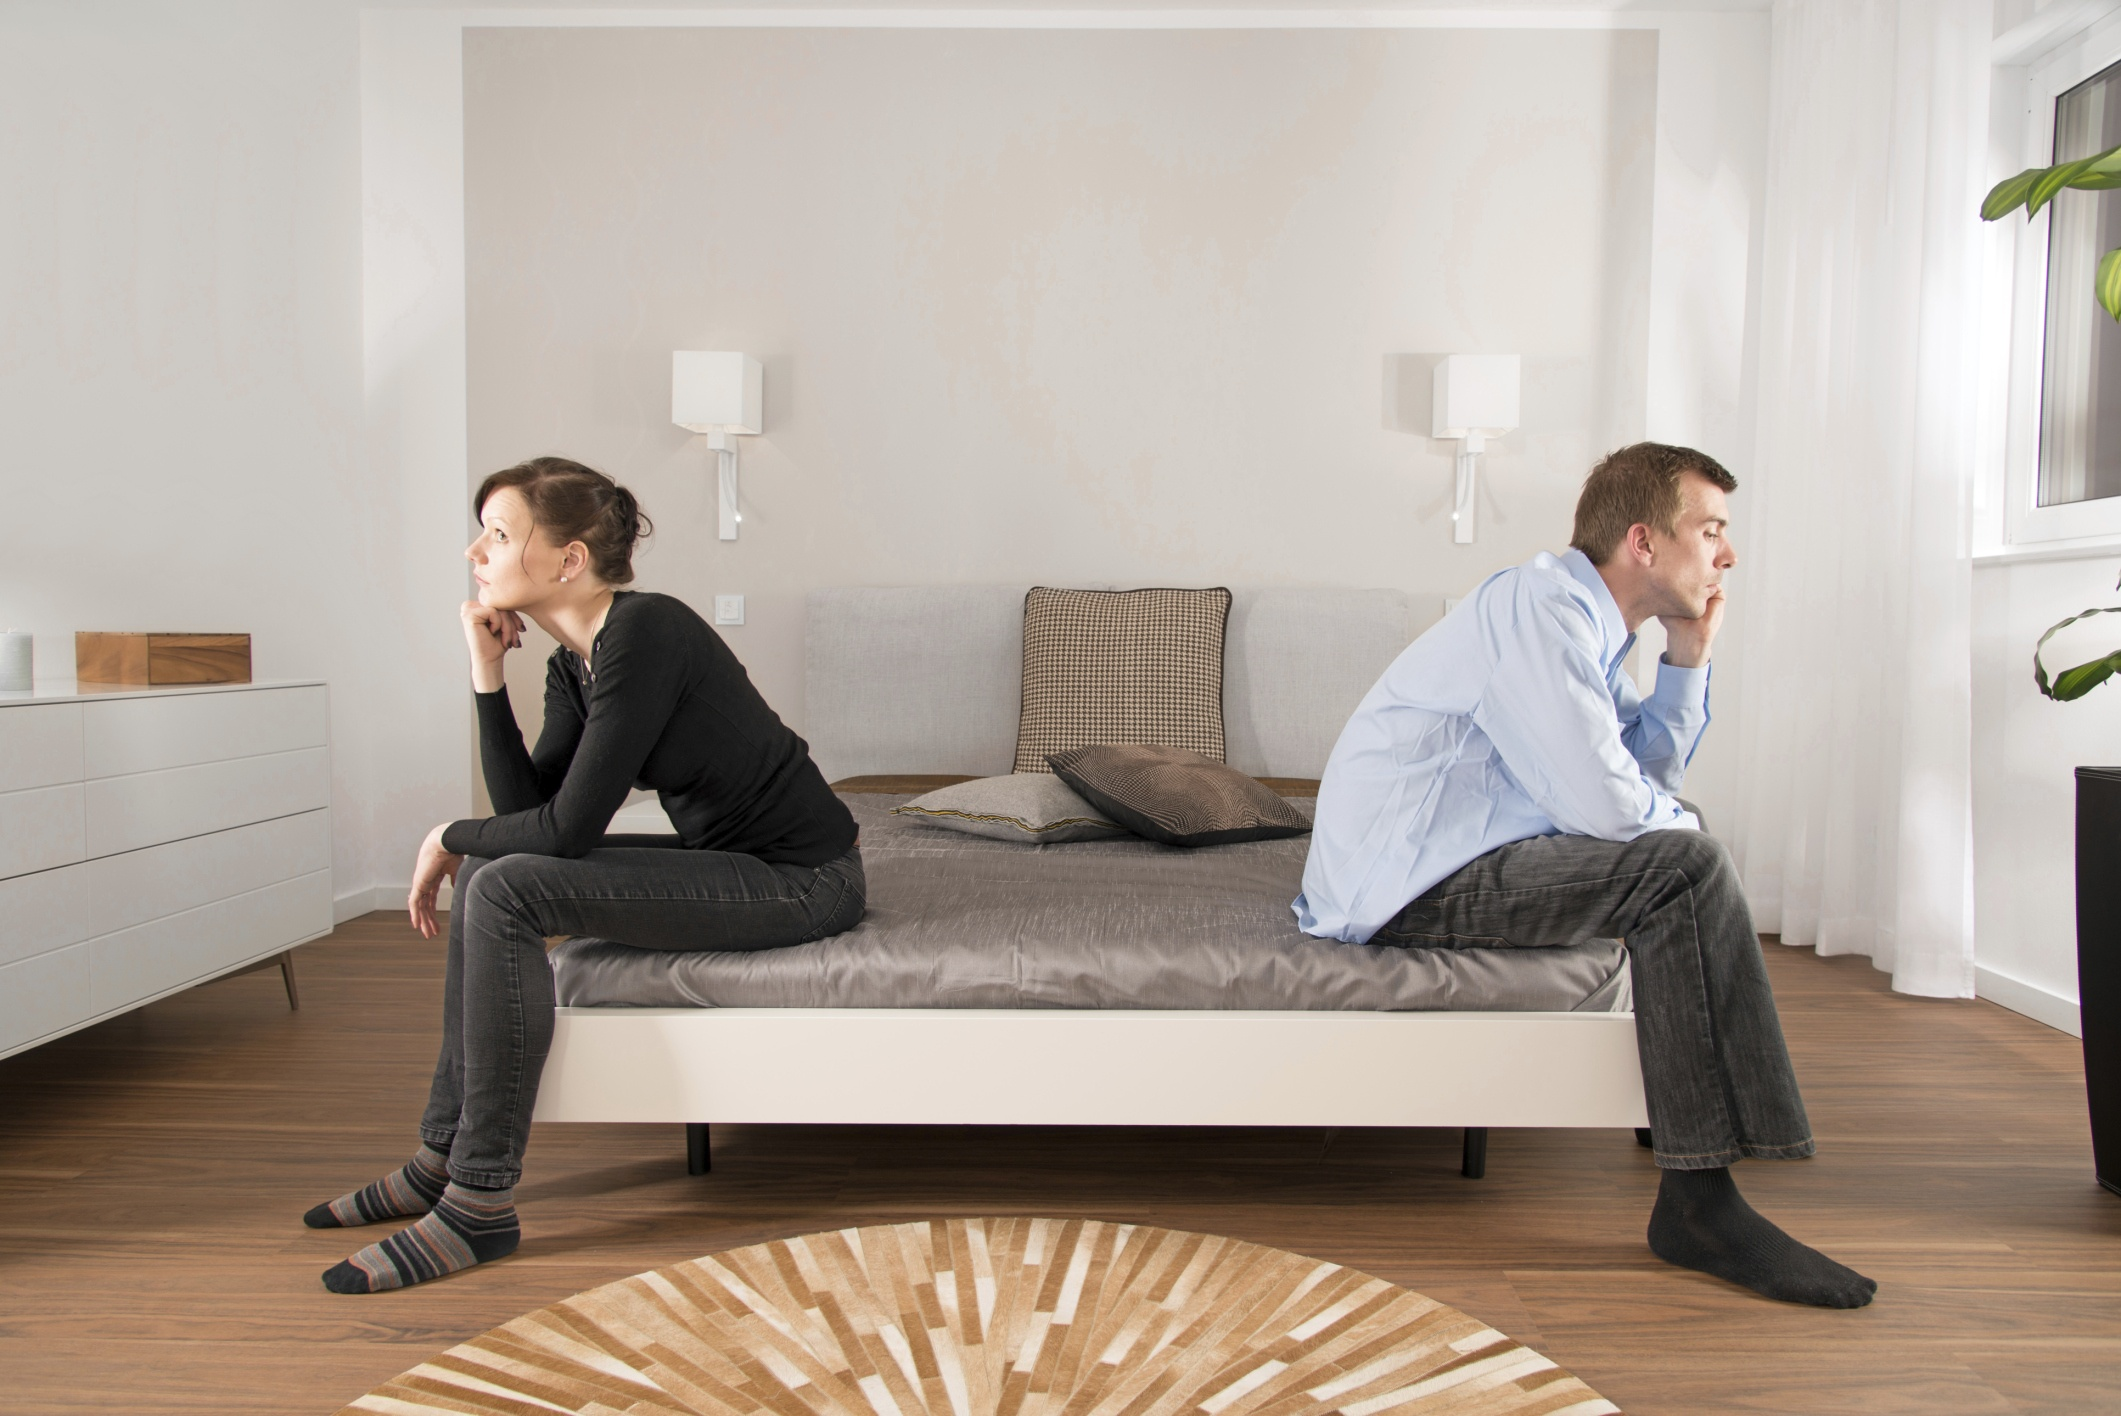 A couple facing away from each other on a bed.